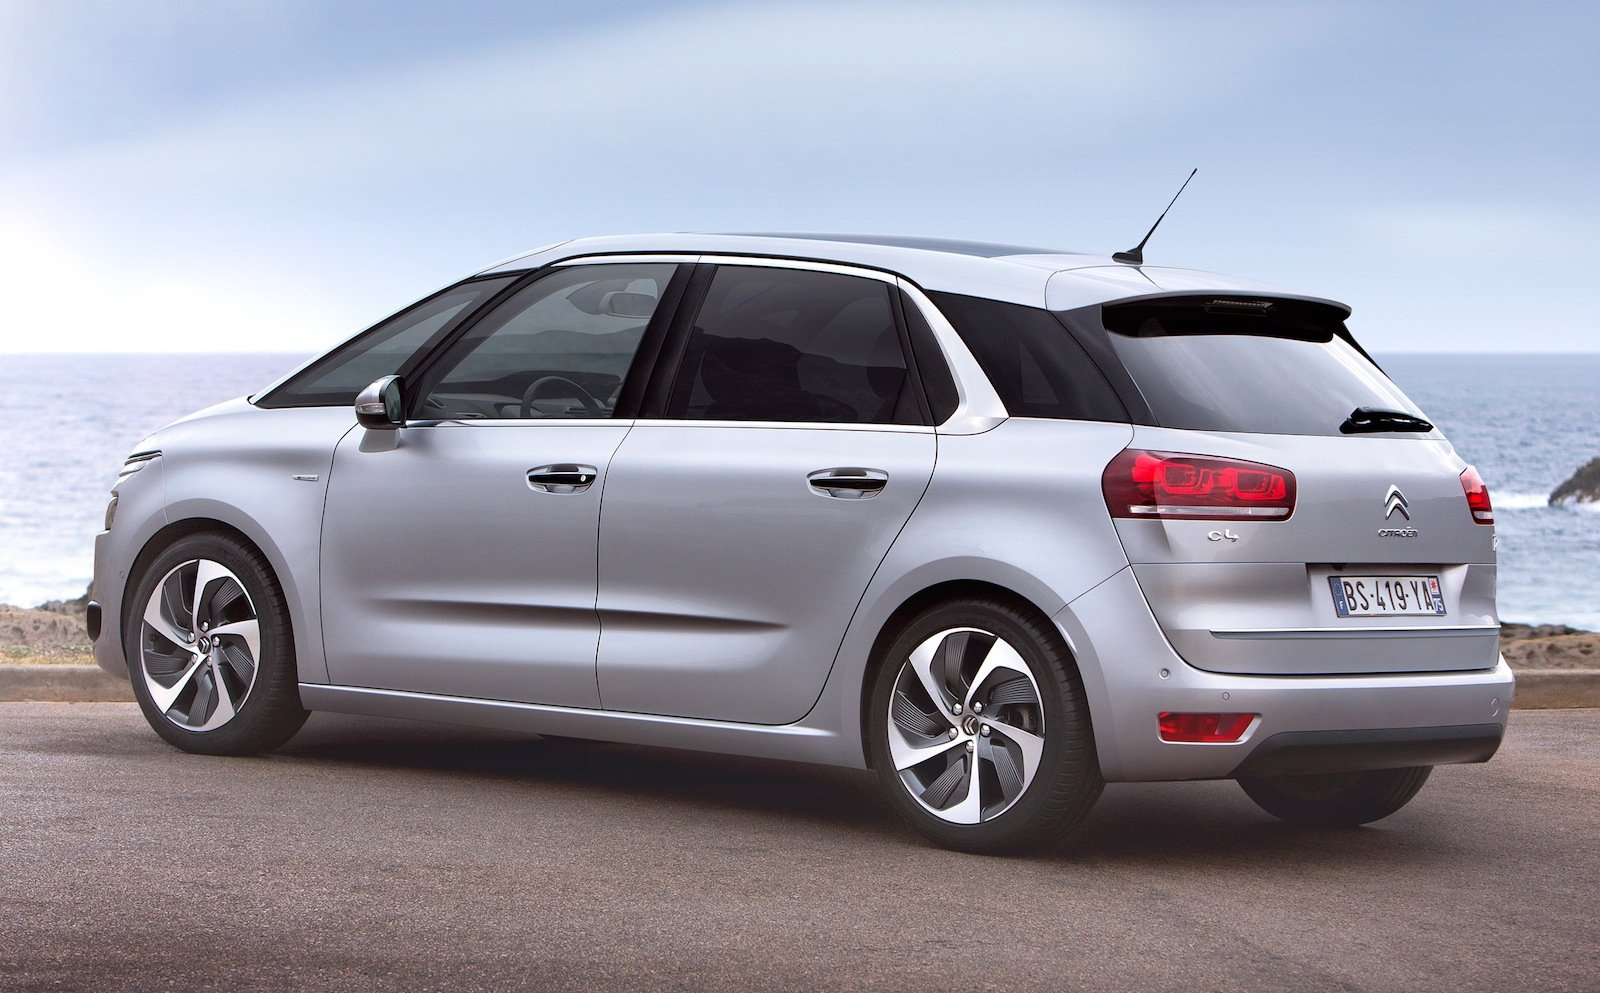 citroen c4 picasso all new mini mpv unveiled photos 1 of 17. Black Bedroom Furniture Sets. Home Design Ideas